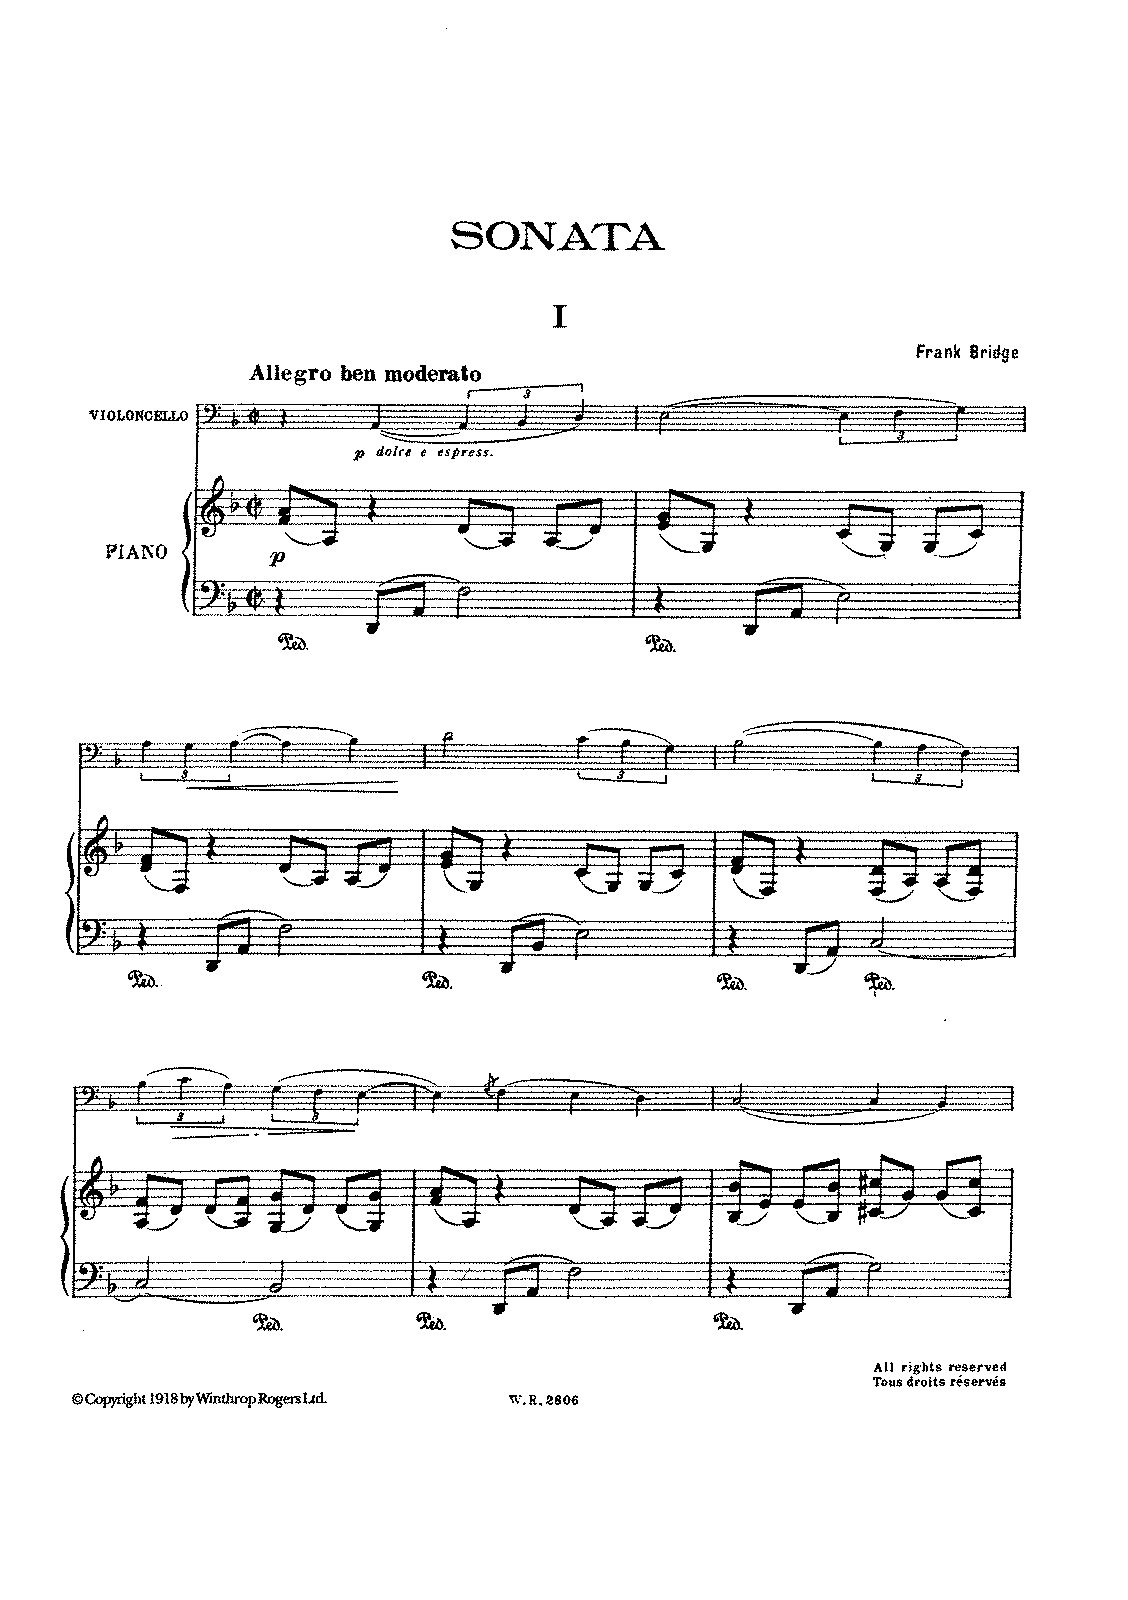 PMLP132371-Bridge, Frank - Sonata for Cello and piano H125-score-.pdf